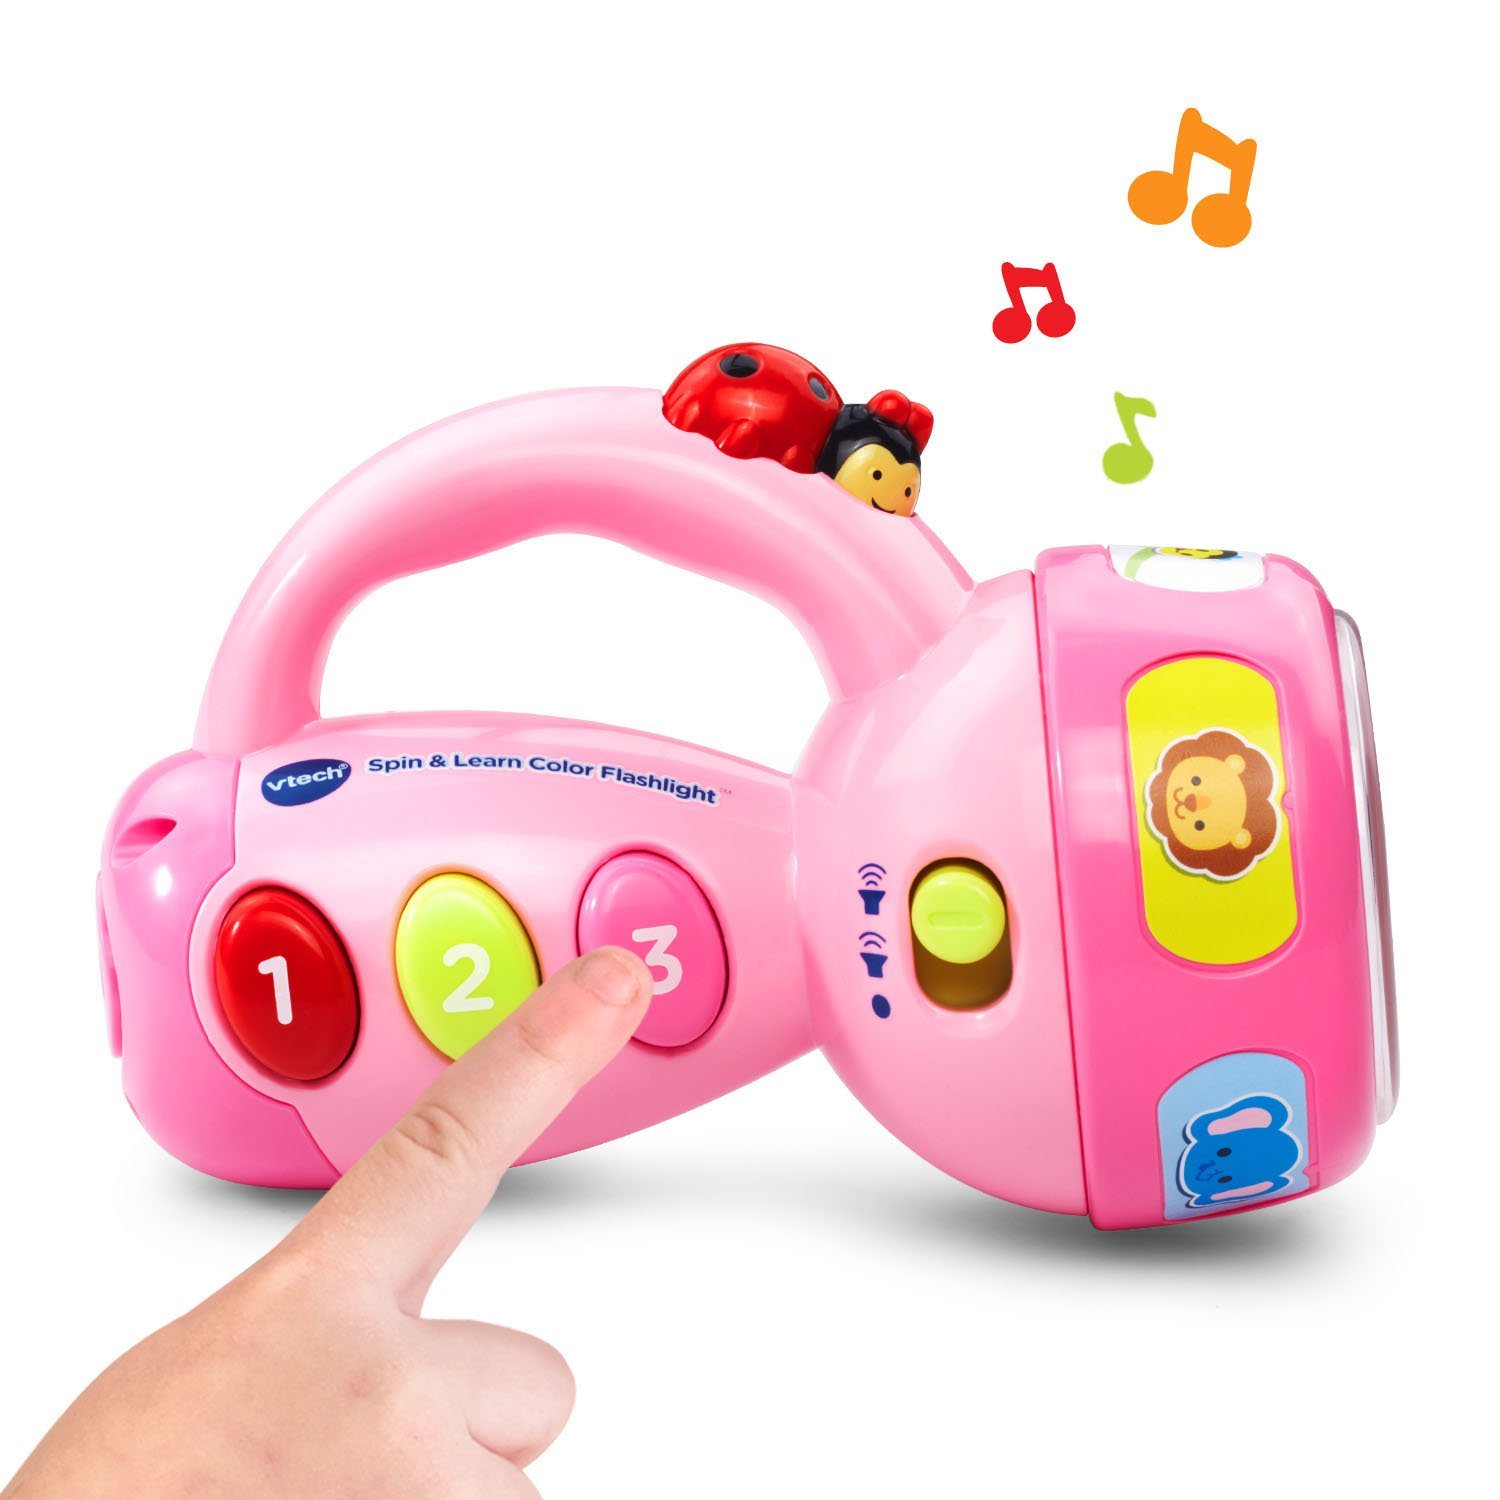 VTech Spin and Learn Color Flashlight Amazon Exclusive, Pink by VTech (Image #4)